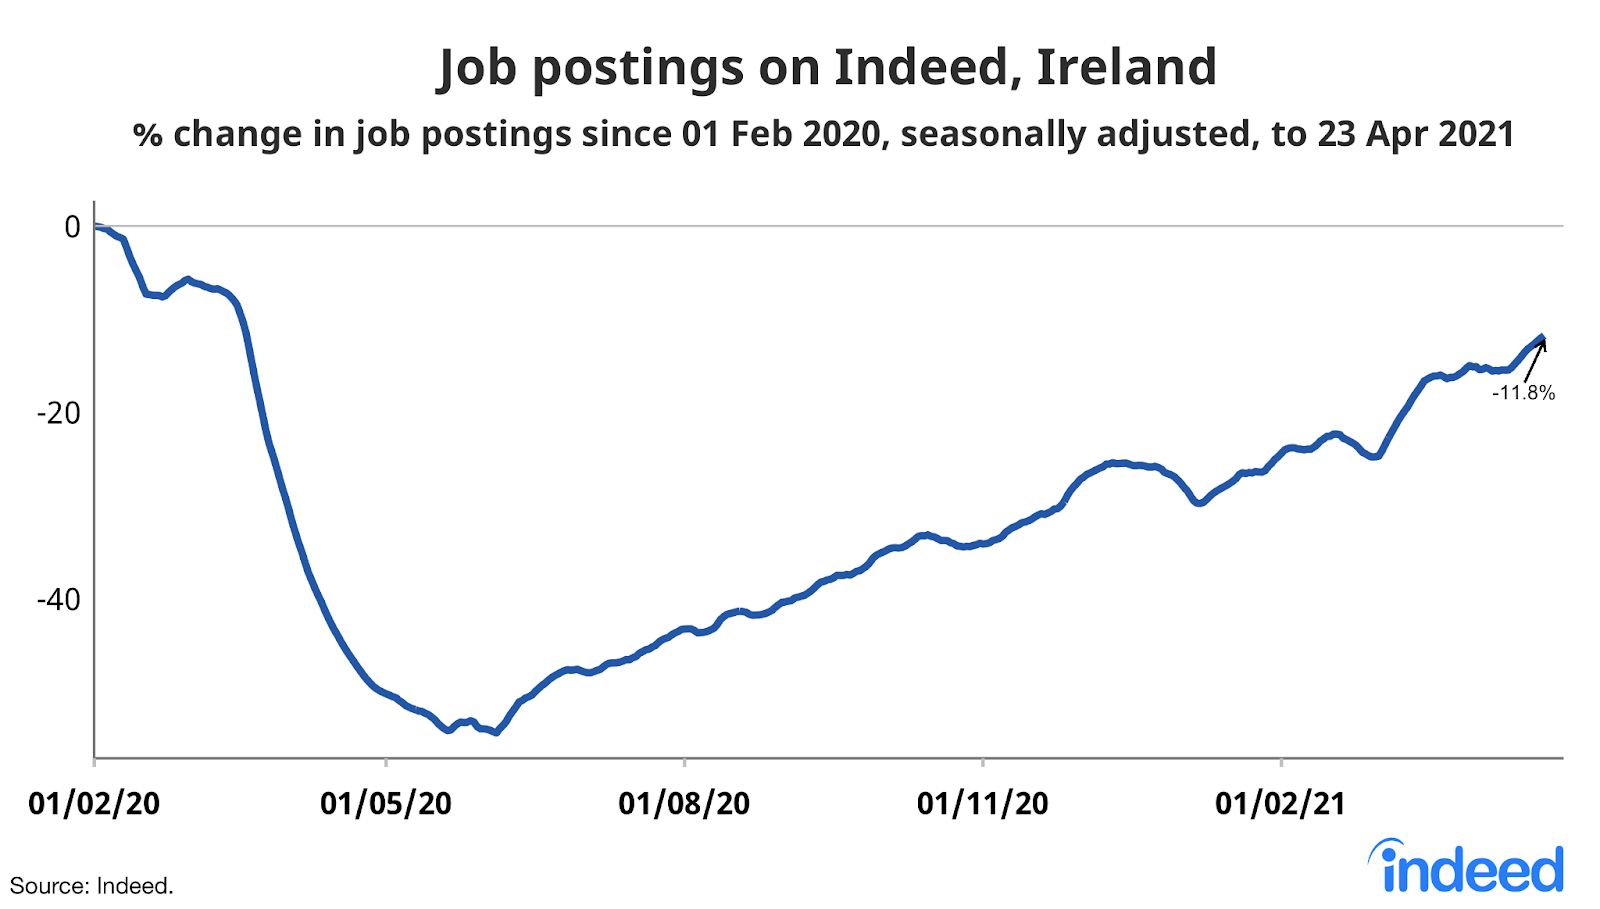 Line graph showing job postings on Indeed, Ireland